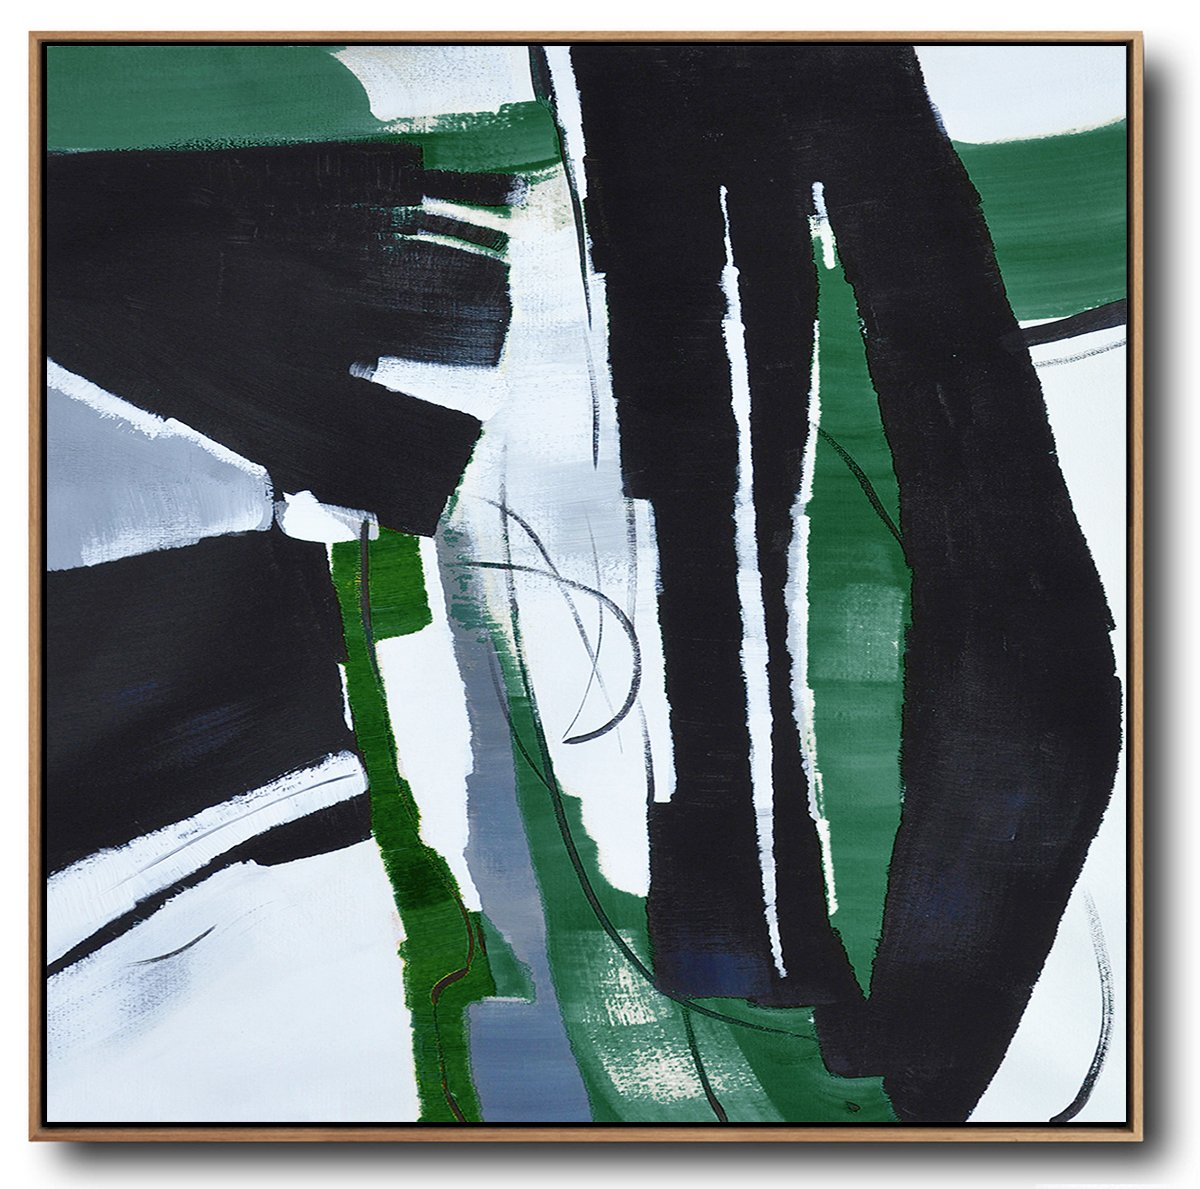 Handmade Extra Large Contemporary Painting,Oversized Dark Green Contemporary Painting On Canvas,Original Art Acrylic Painting,Dark Green,Balck,White.etc